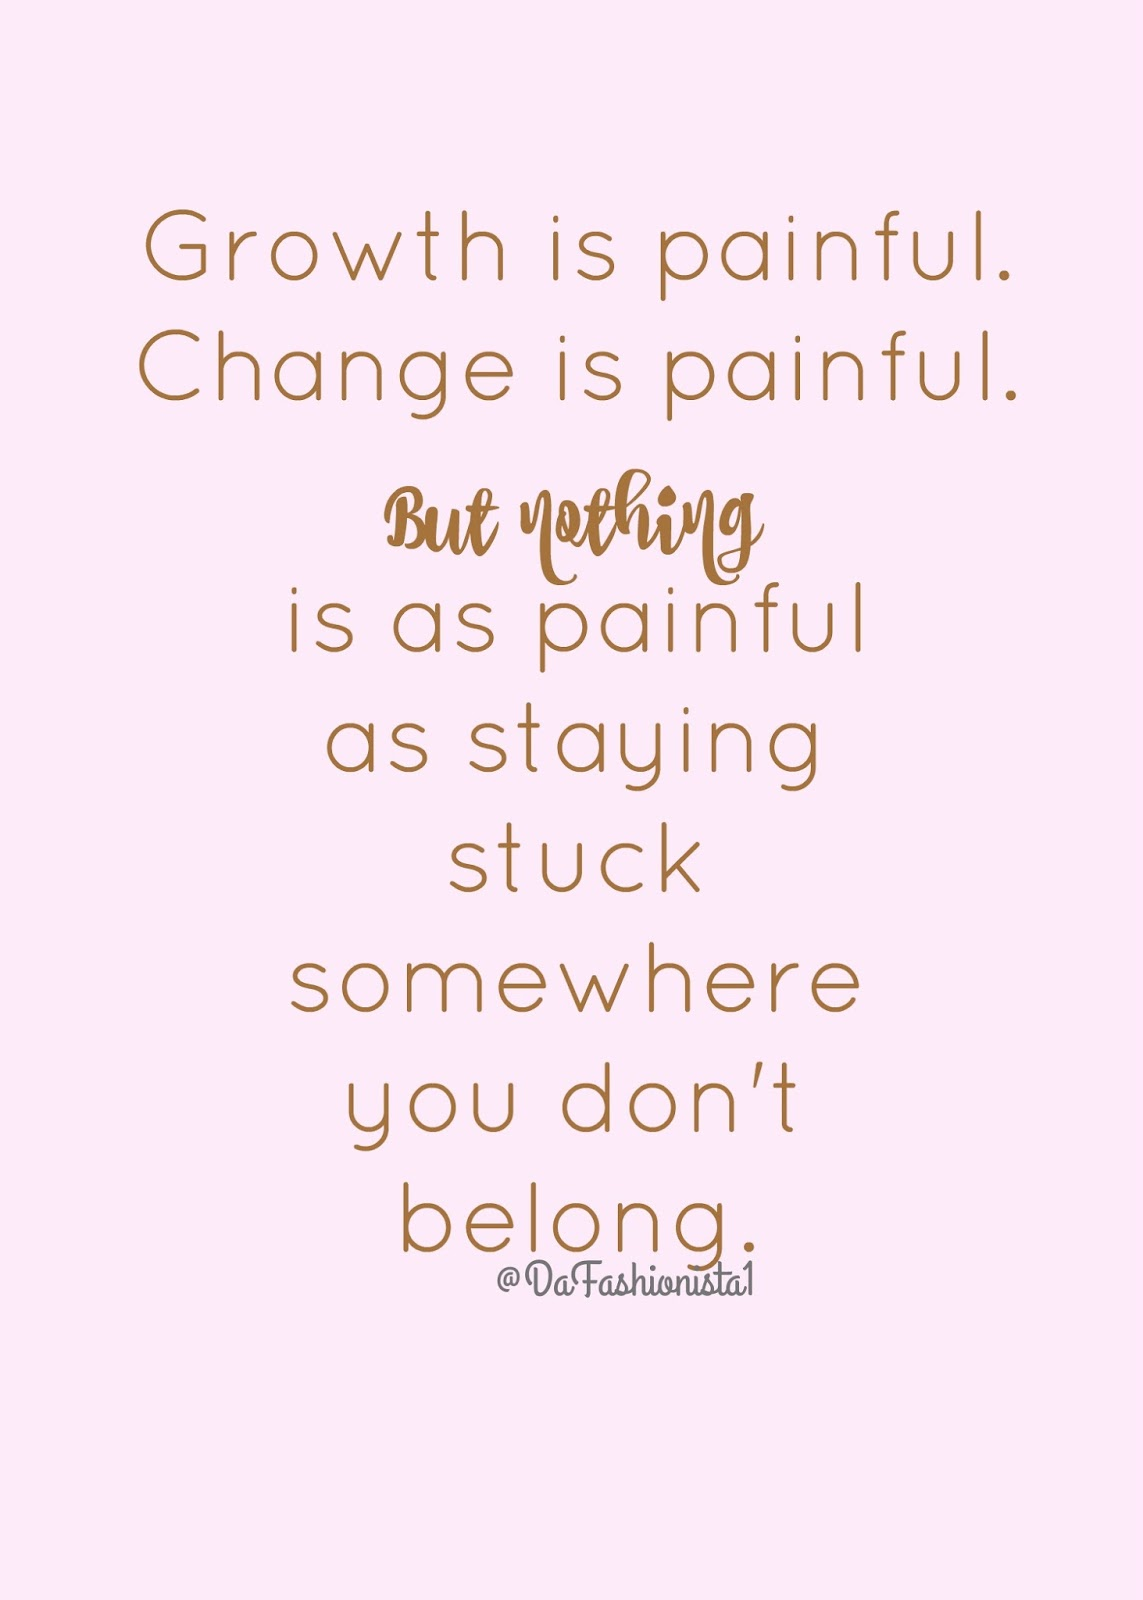 Words-of-Wisdom-Wednesday-Avoid-Stagnation-Choose-Change-and-Growth-is-Painful